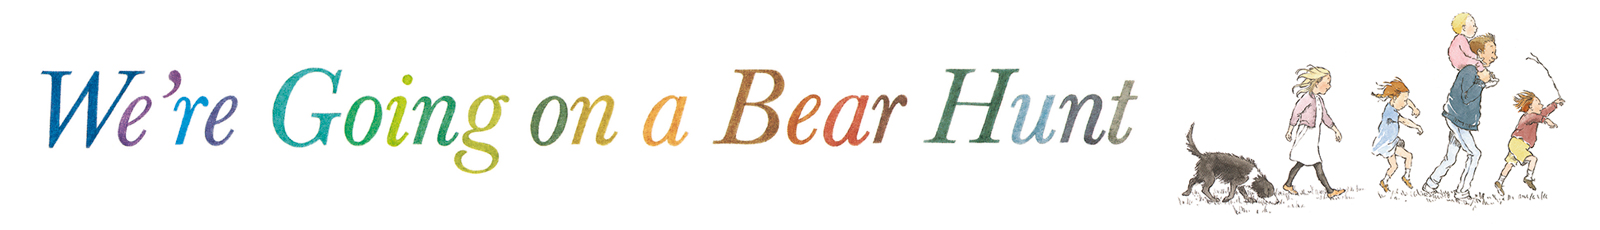 We're Going on a Bear Hunt 25th Anniversary Logo. We're Going on a Bear Hunt Celebrating 25 Years Header Image. Illustration of man walking with three children.